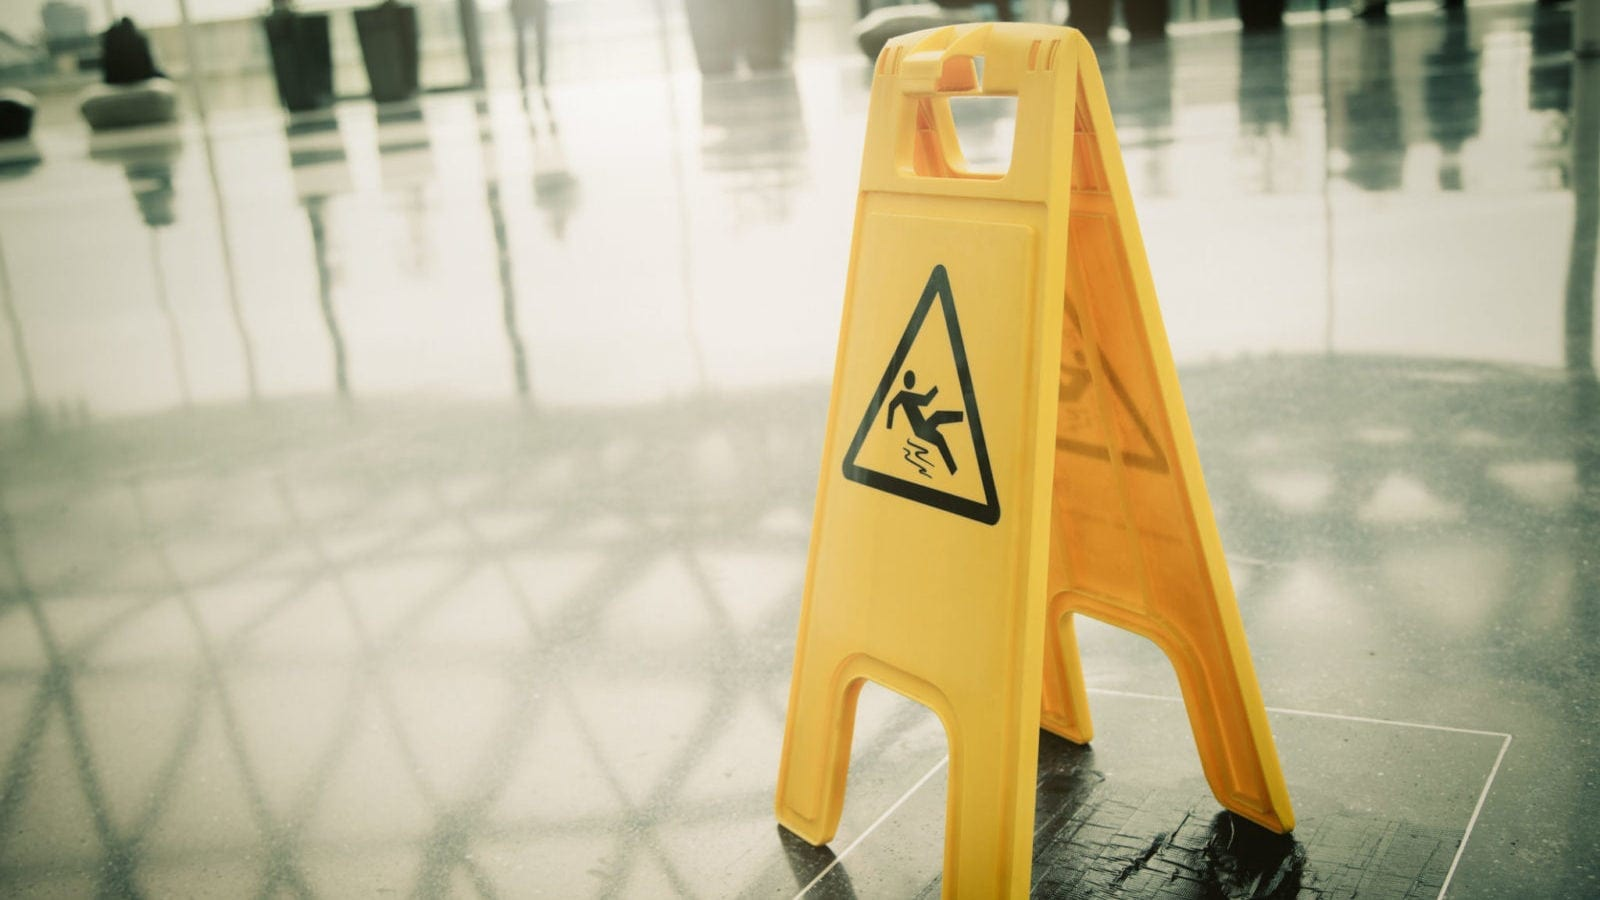 slip and fall sign on wet floor